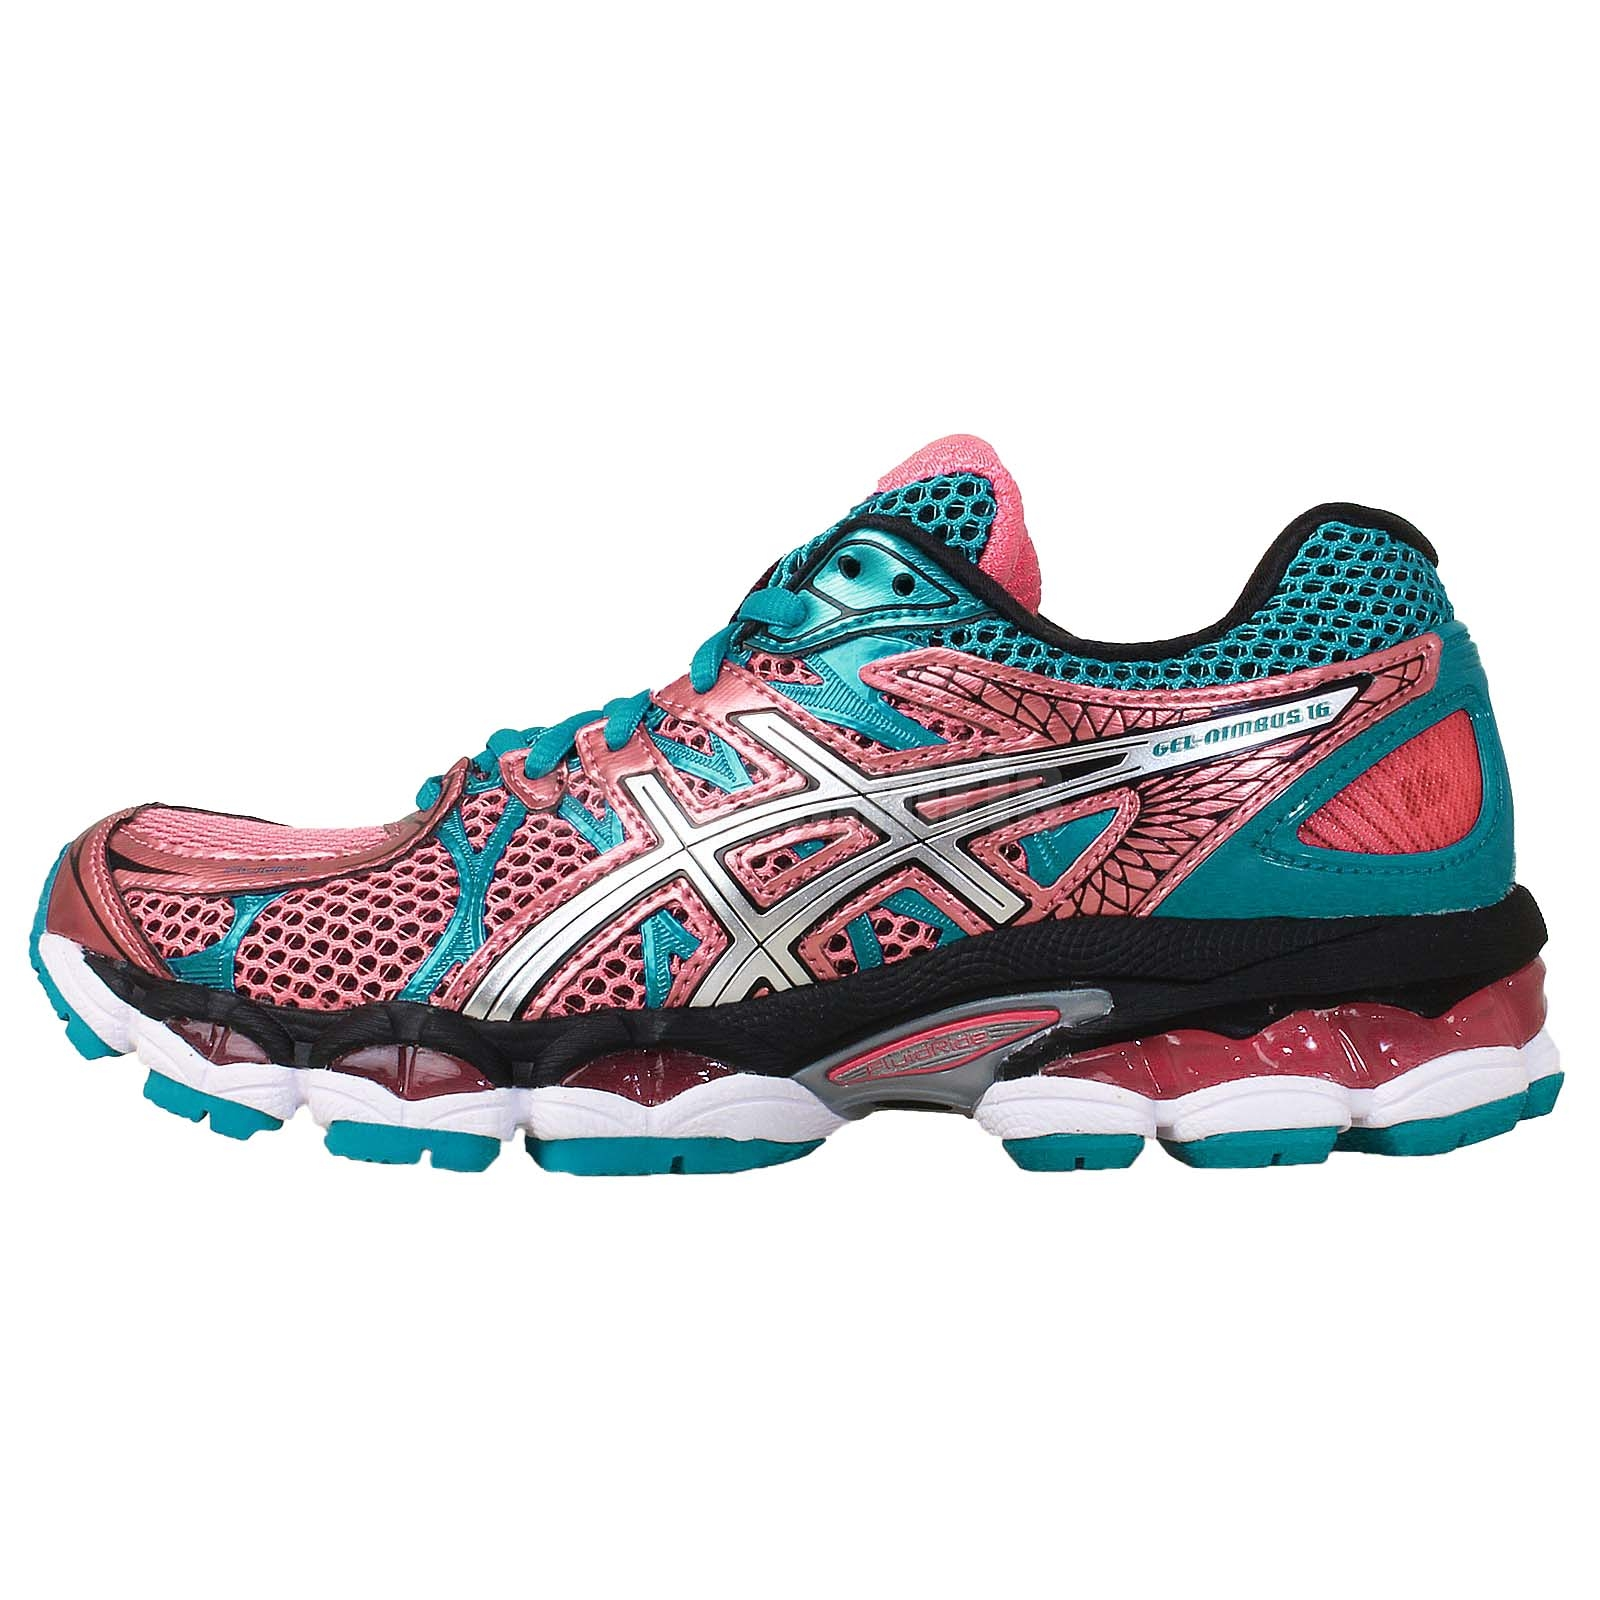 asics gel nimbus 16 pink blue womens jogging running shoes trainers t485n 3497 ebay. Black Bedroom Furniture Sets. Home Design Ideas